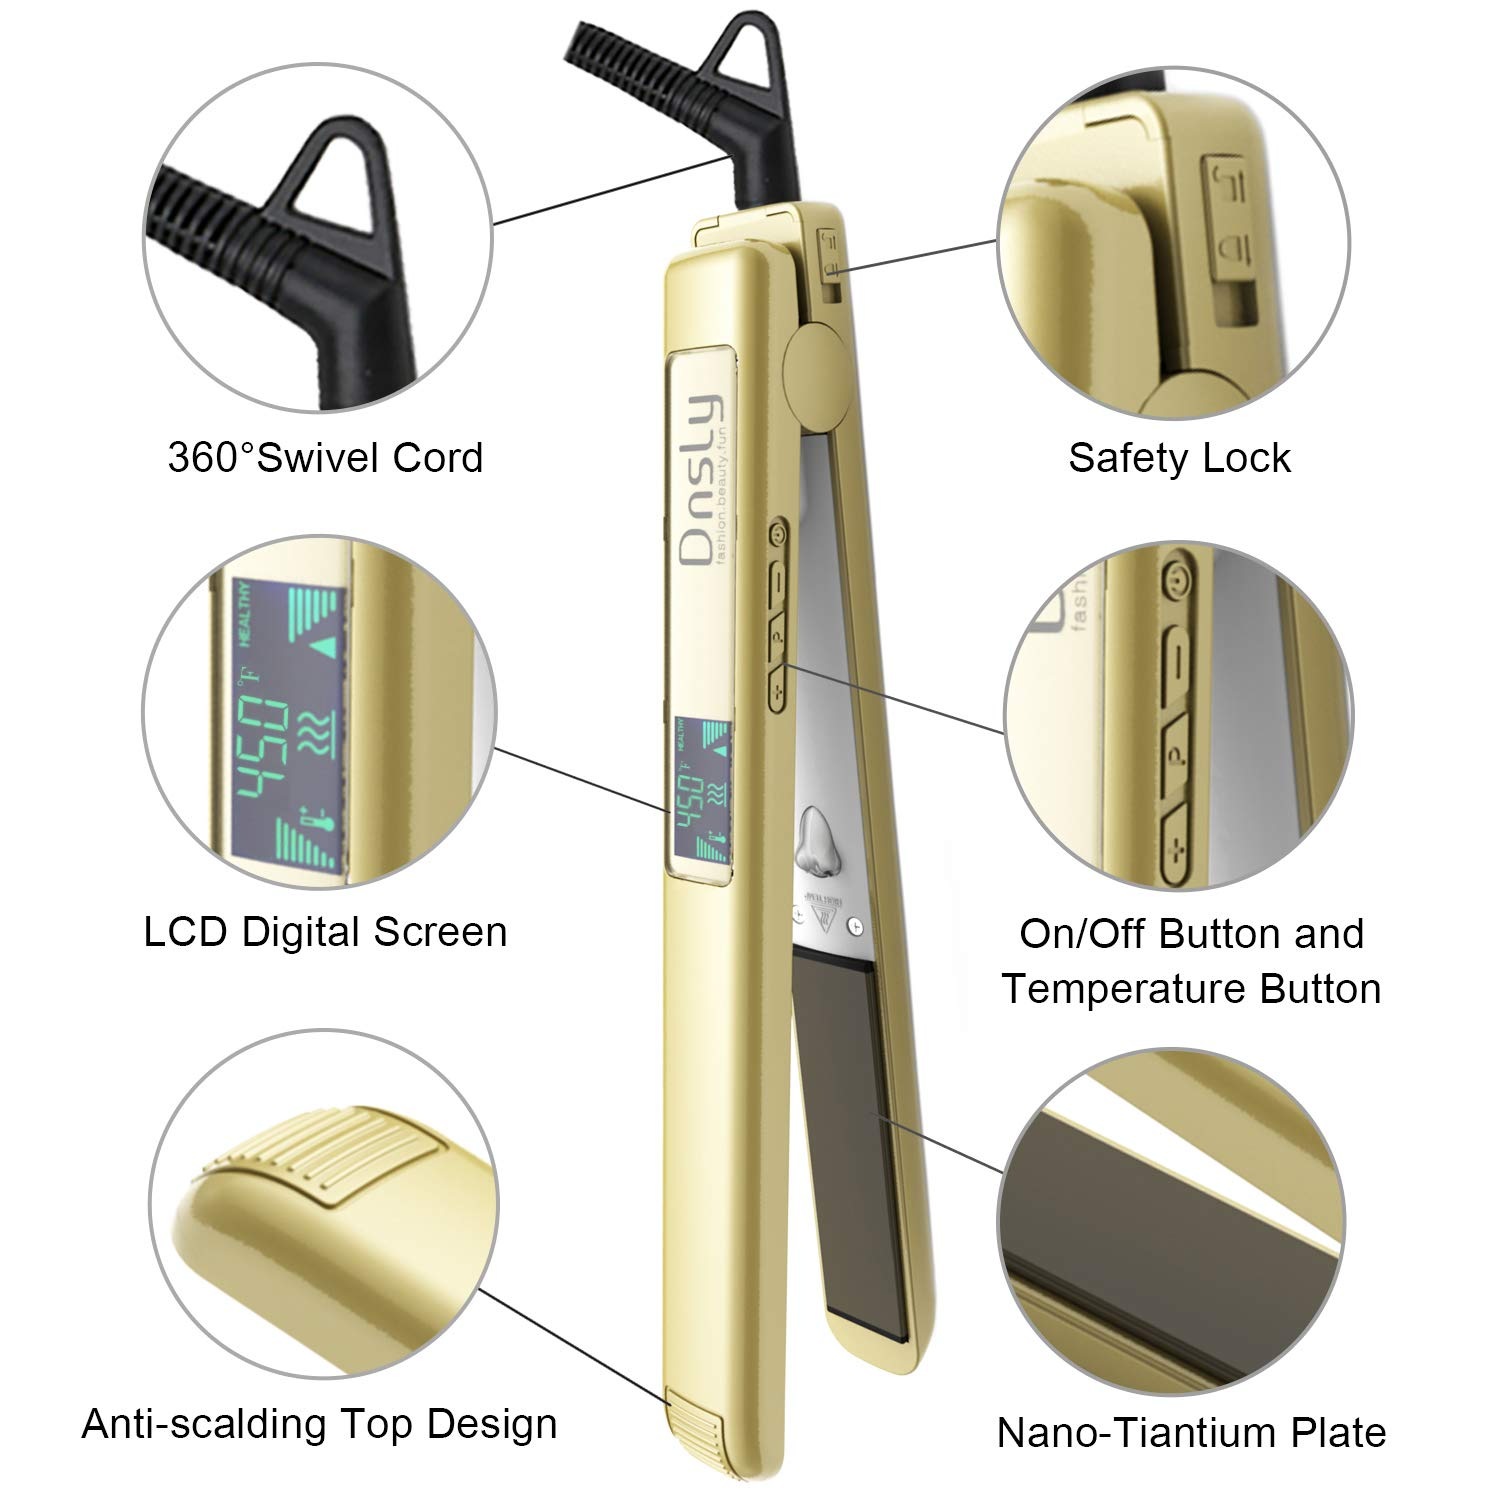 Professional Salon Flat Iron Hair Straighteners With 1 Inch Titanium Plates, Negative Ion technology, Adjustable temperature suitable for all hair types, Dual Voltage, Heats Up Fast, Gold by Dnsly (Image #3)